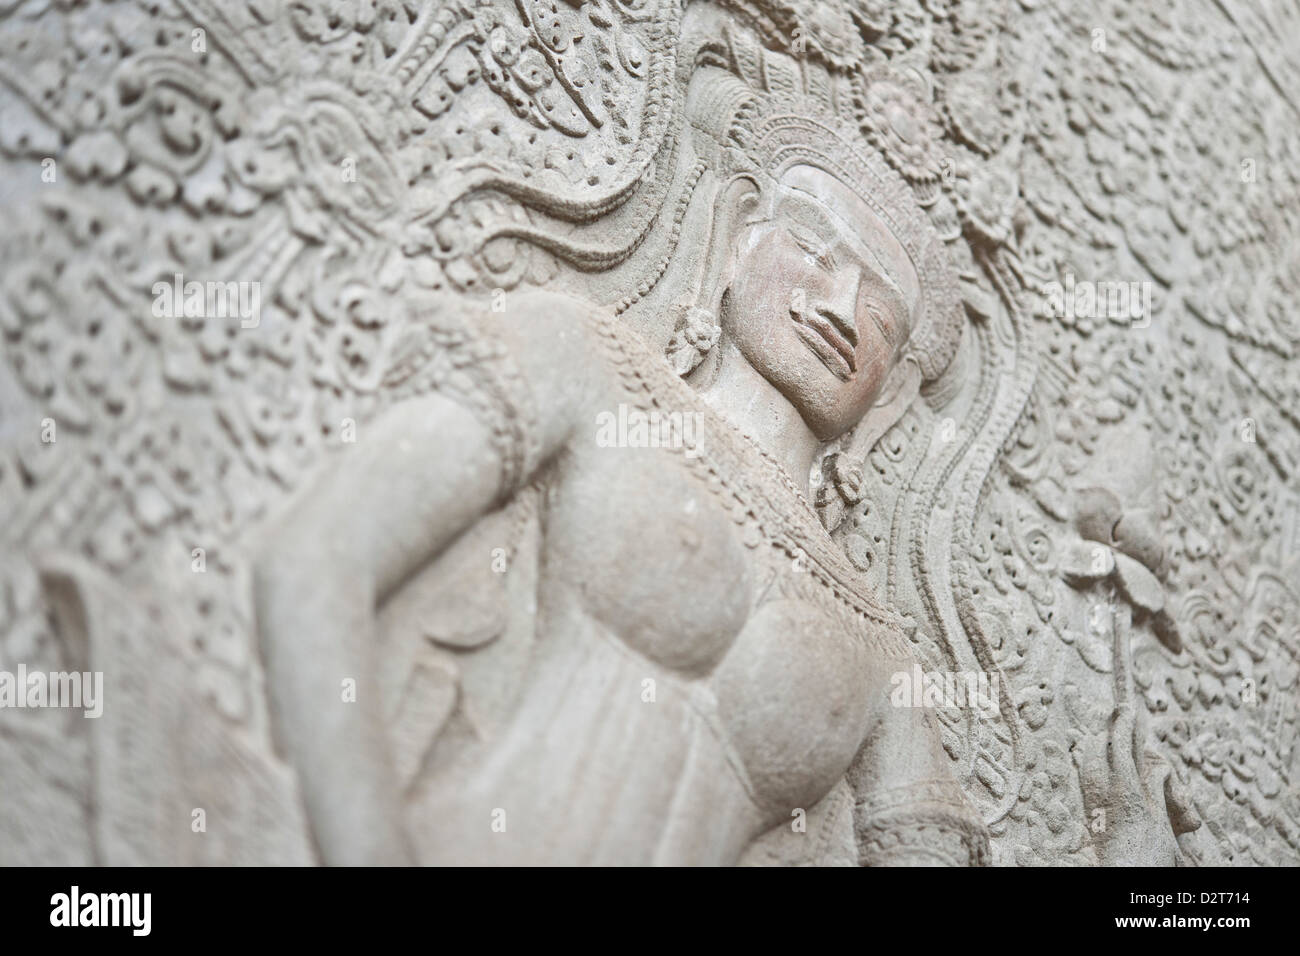 Stone relief carving, Angkor Wat, UNESCO World Heritage Site, Siem Reap, Cambodia, Indochina, Southeast Asia, Asia - Stock Image